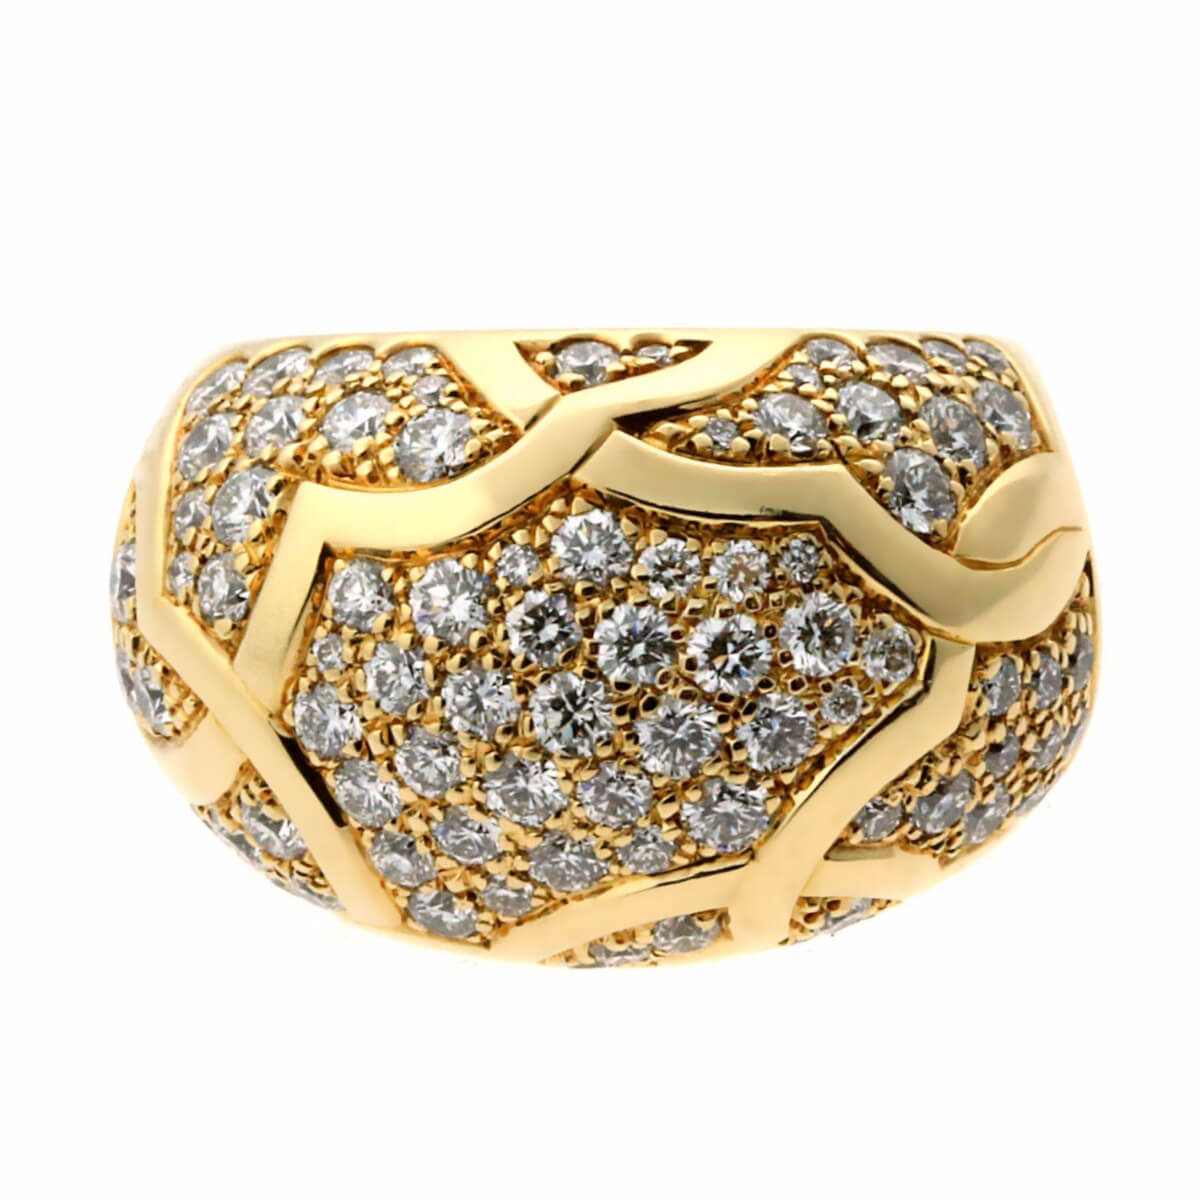 Chanel Camellia Flower Diamond Gold Cocktail Ring